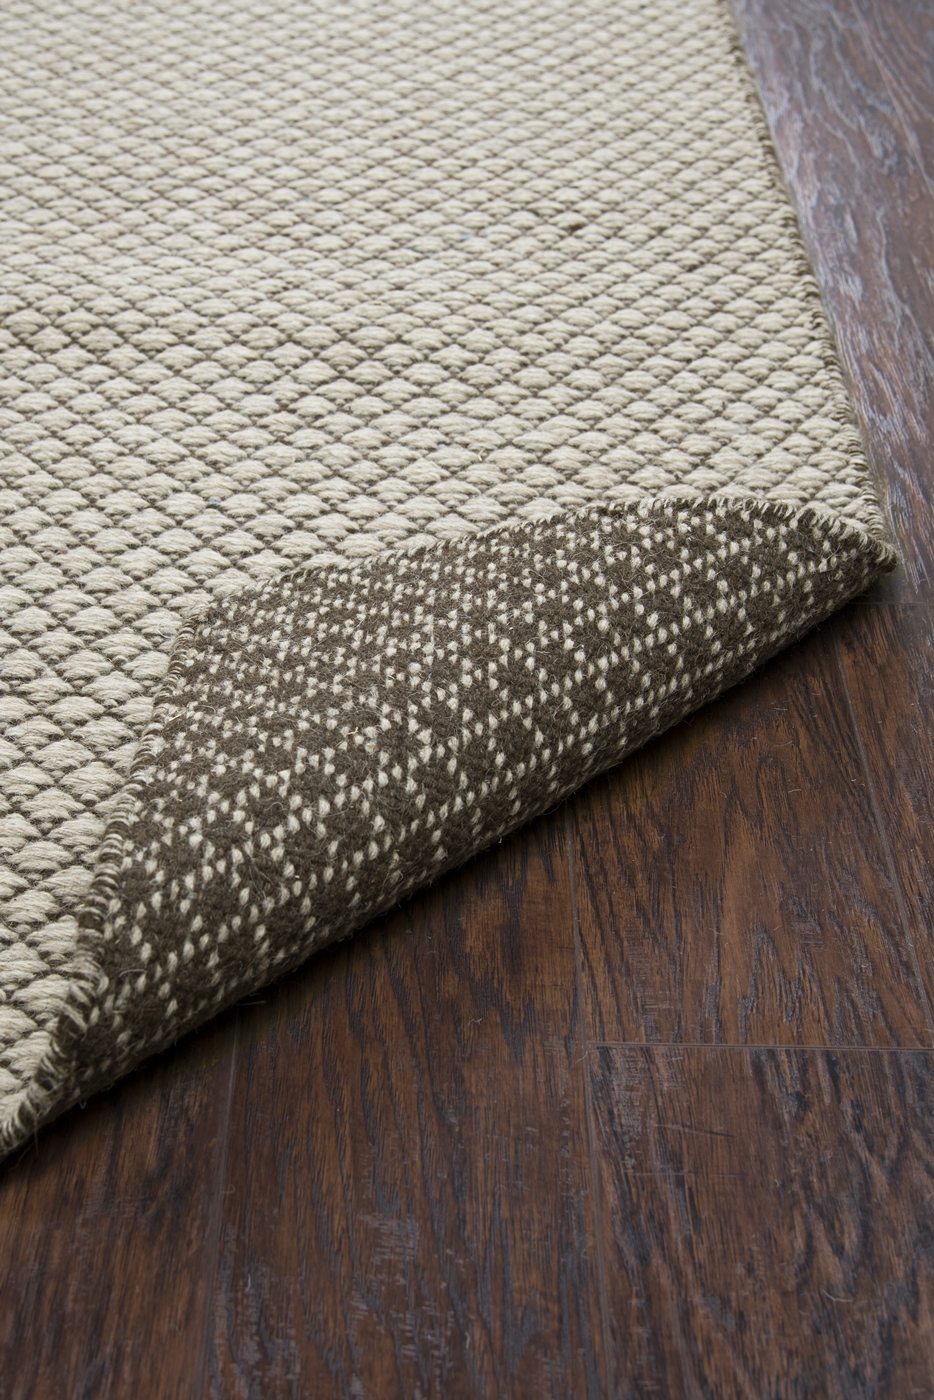 Twist Textured Woven Pattern Wool Area Rug In Gray Amp Off